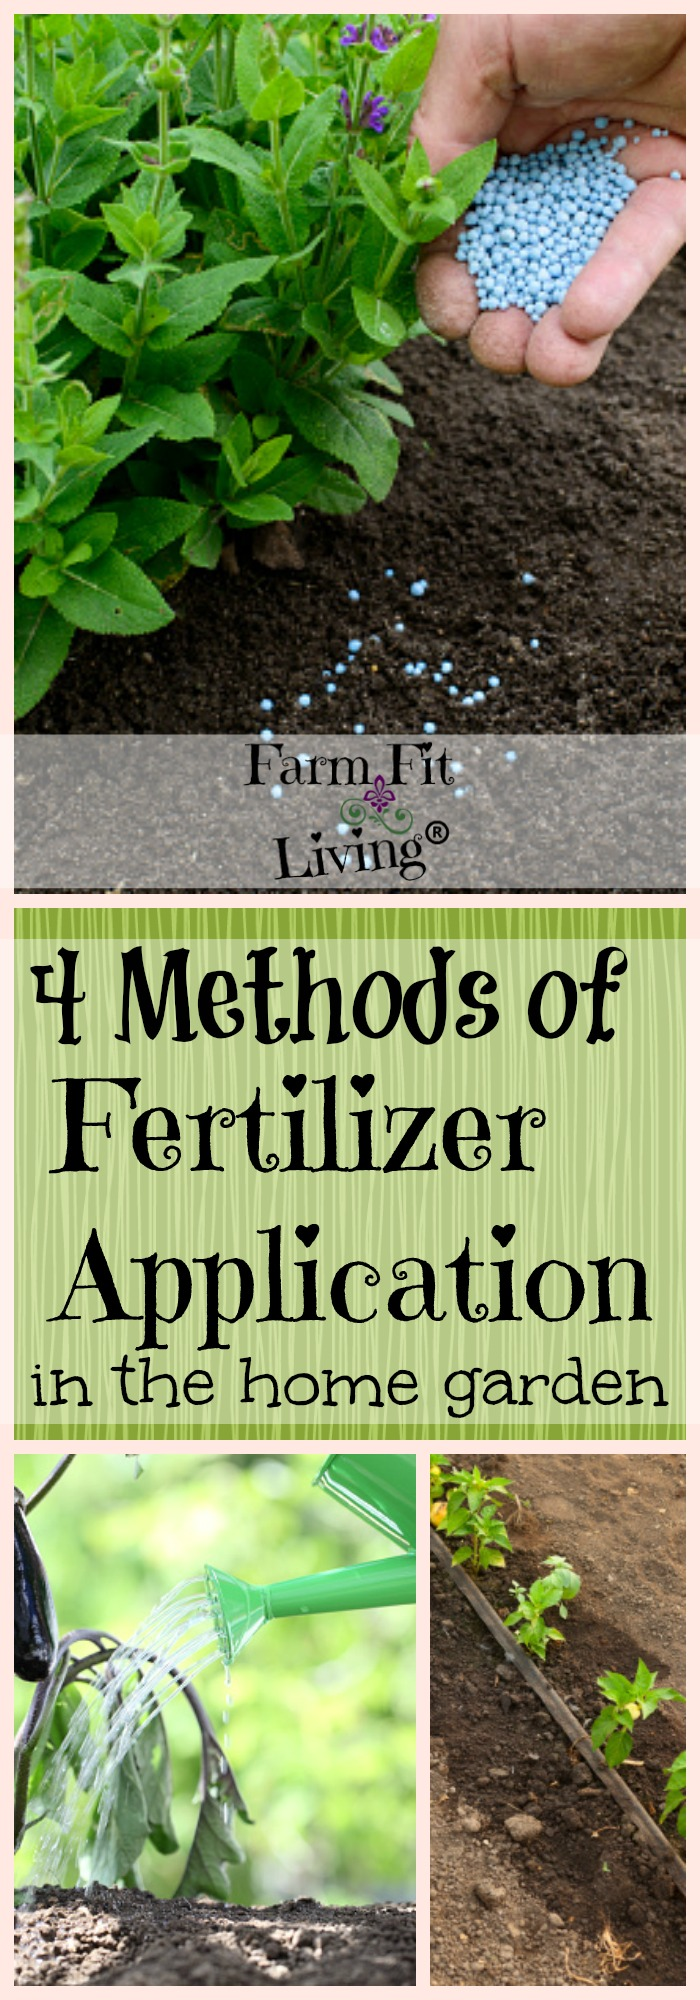 Are you interested in growing a more abundant garden? Here are 4 methods of fertilizer application in the home garden that might fit your needs.